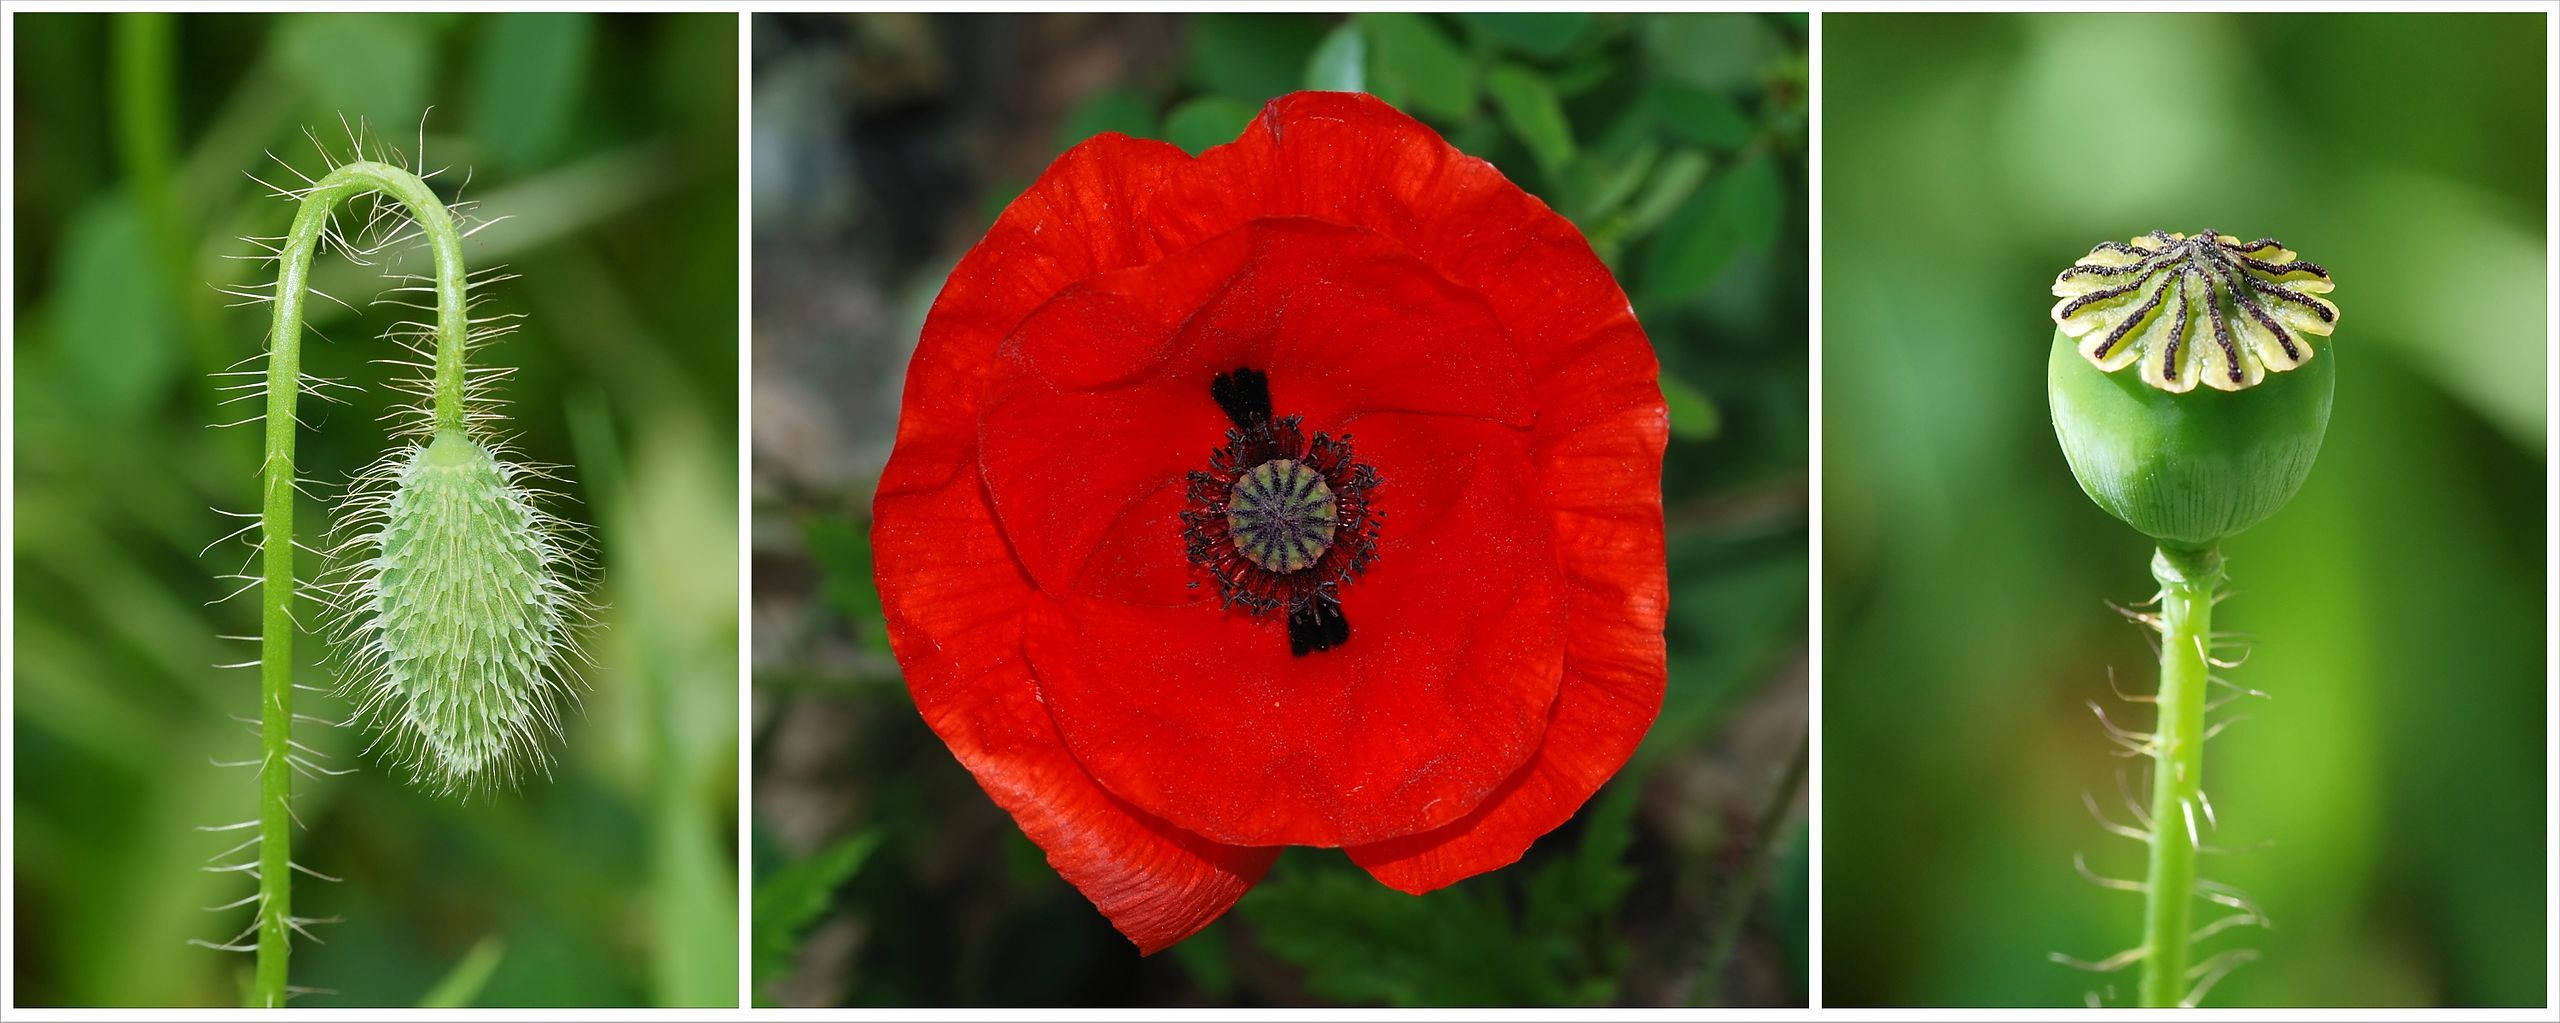 The Three Stages In A Common Poppy Flower Bud Flower And Capsule Grow Poppy Flowers Growing Poppies Poppy Flower